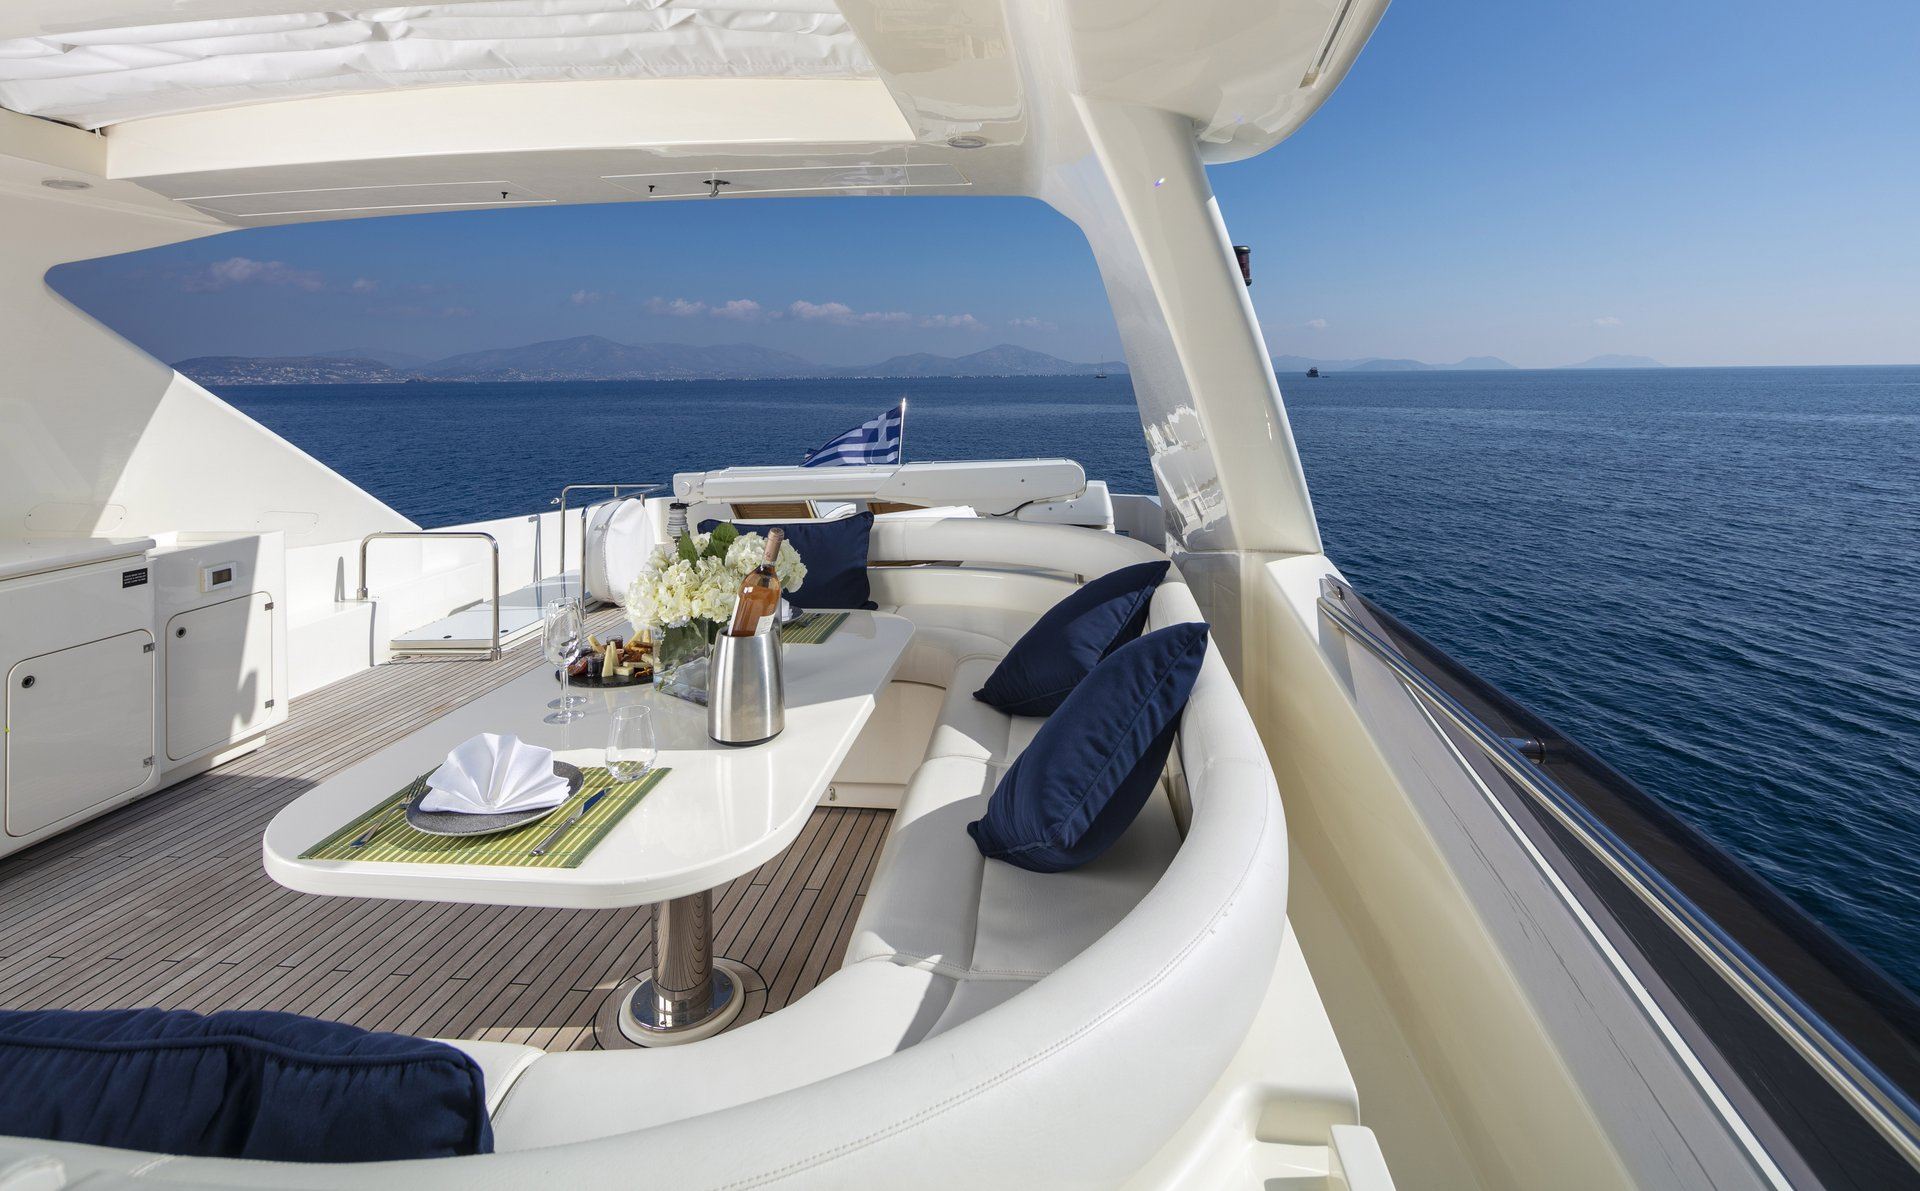 m/y astarte yacht for charter alfresco dining